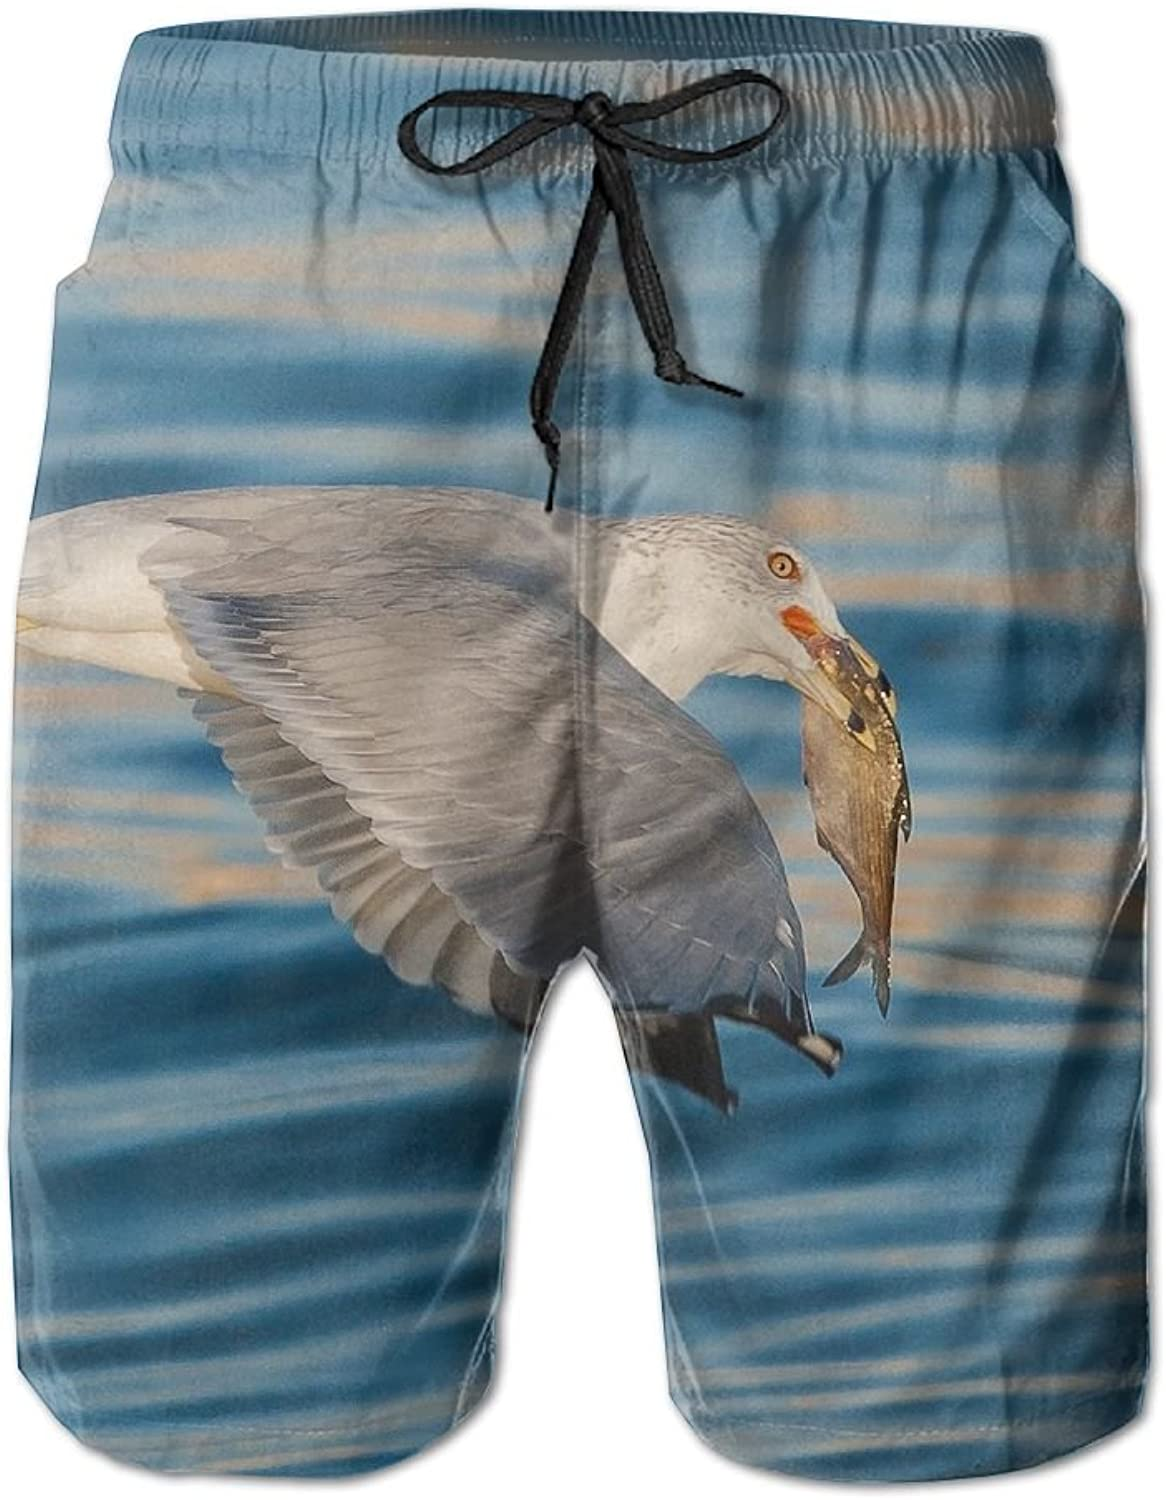 49dfd9503f188 Tydo Quick Quick Quick Dry Beach Shorts Animals Seagull Painting Swim  Trunks Surf Board Pants With Pockets For Men 808010